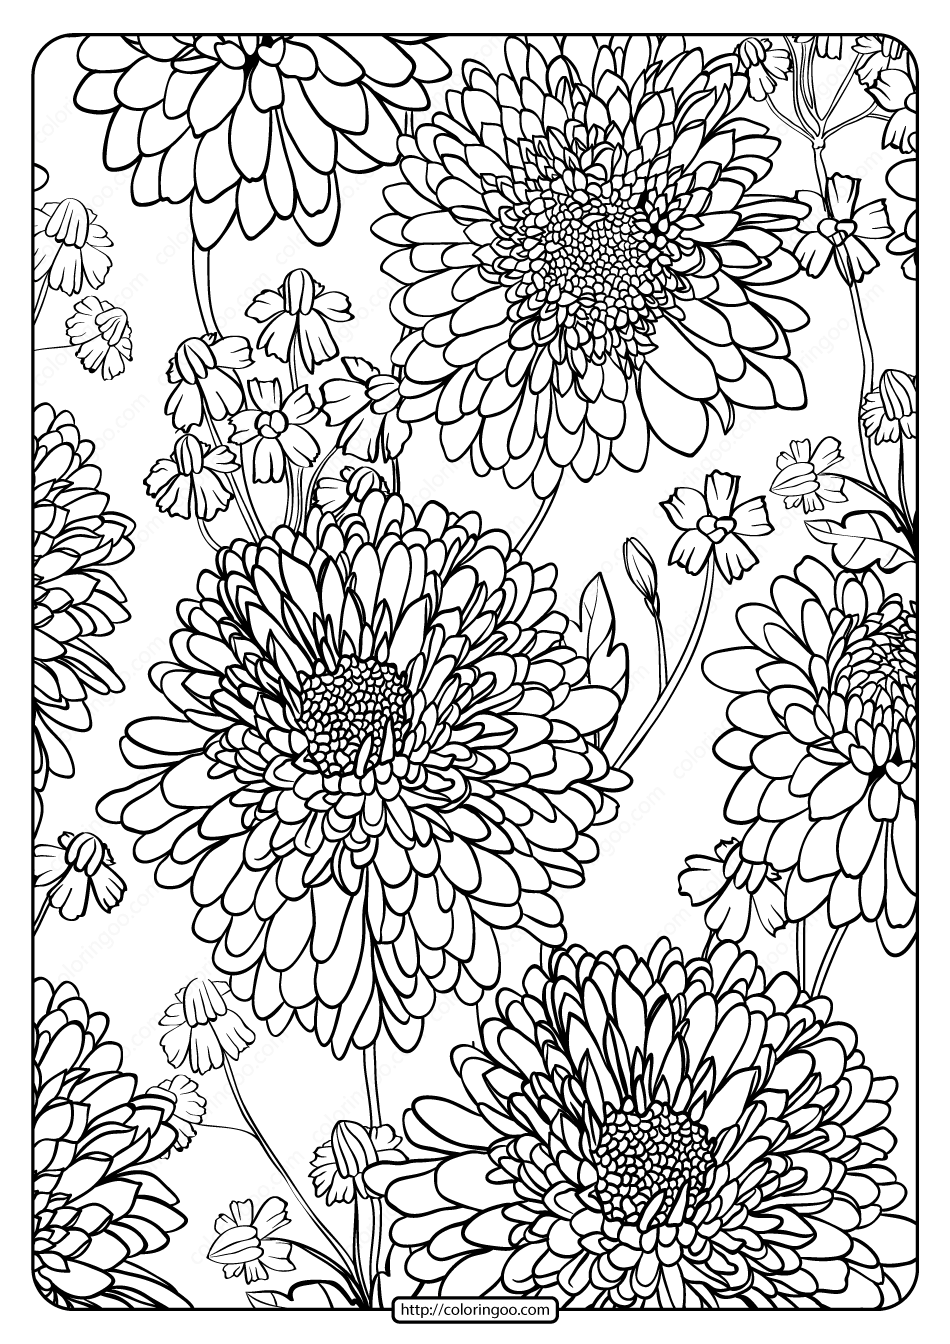 Printable Flower Pattern Coloring Page 01